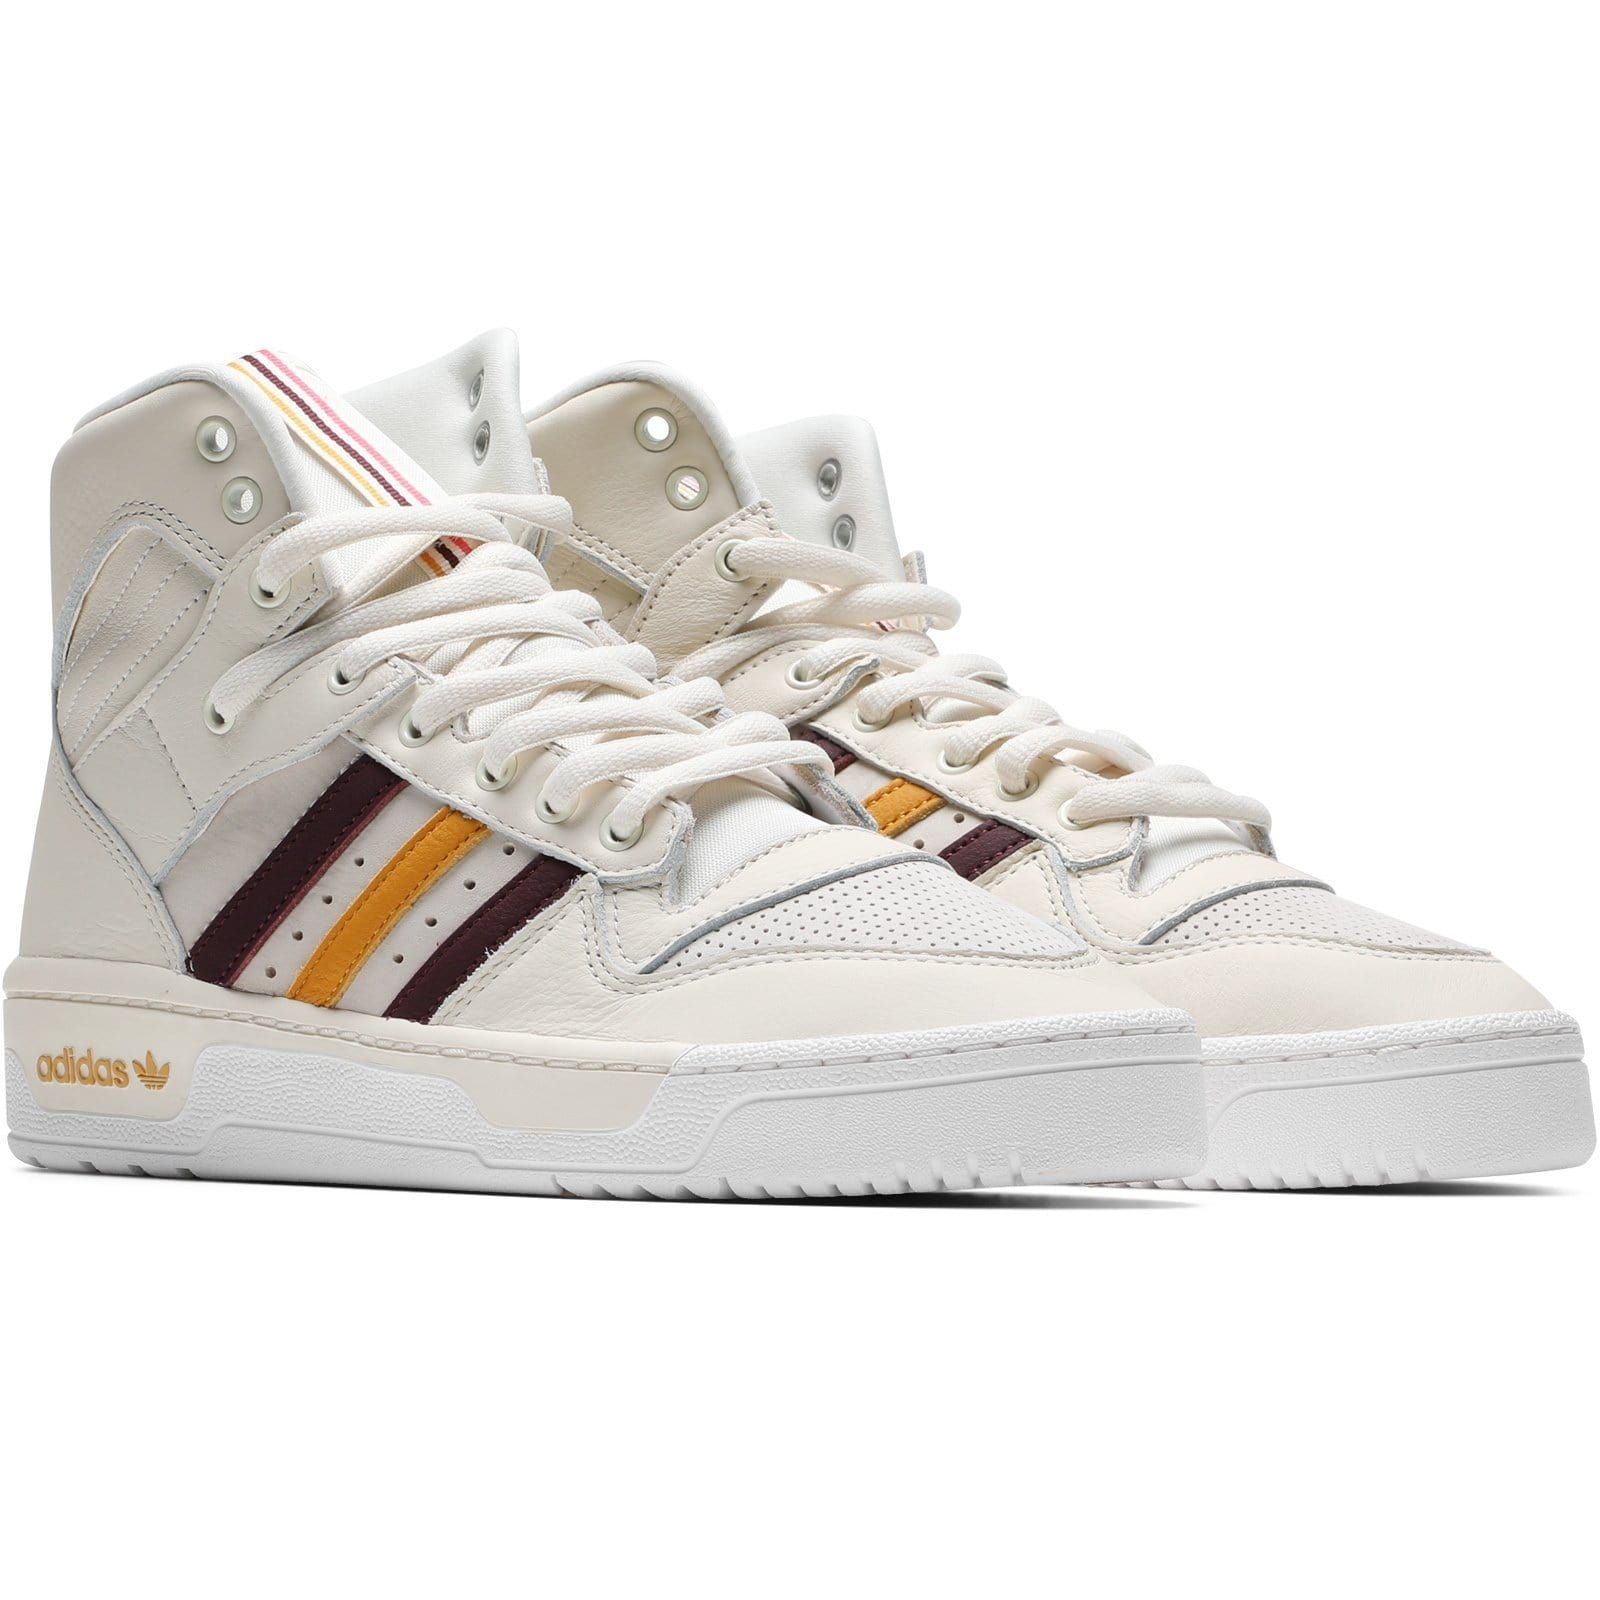 size 40 fed48 3107d Adidas x Eric Emanuel RIVALRY HI OG Cream White Maroon Customized